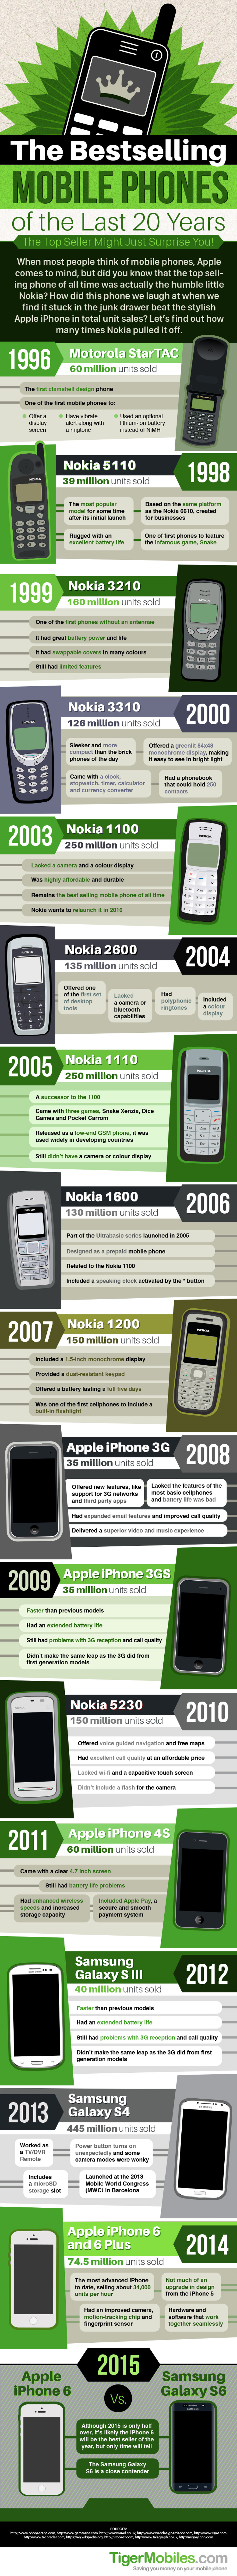 Bestselling Mobile Phones of the last 20 Years Infographic